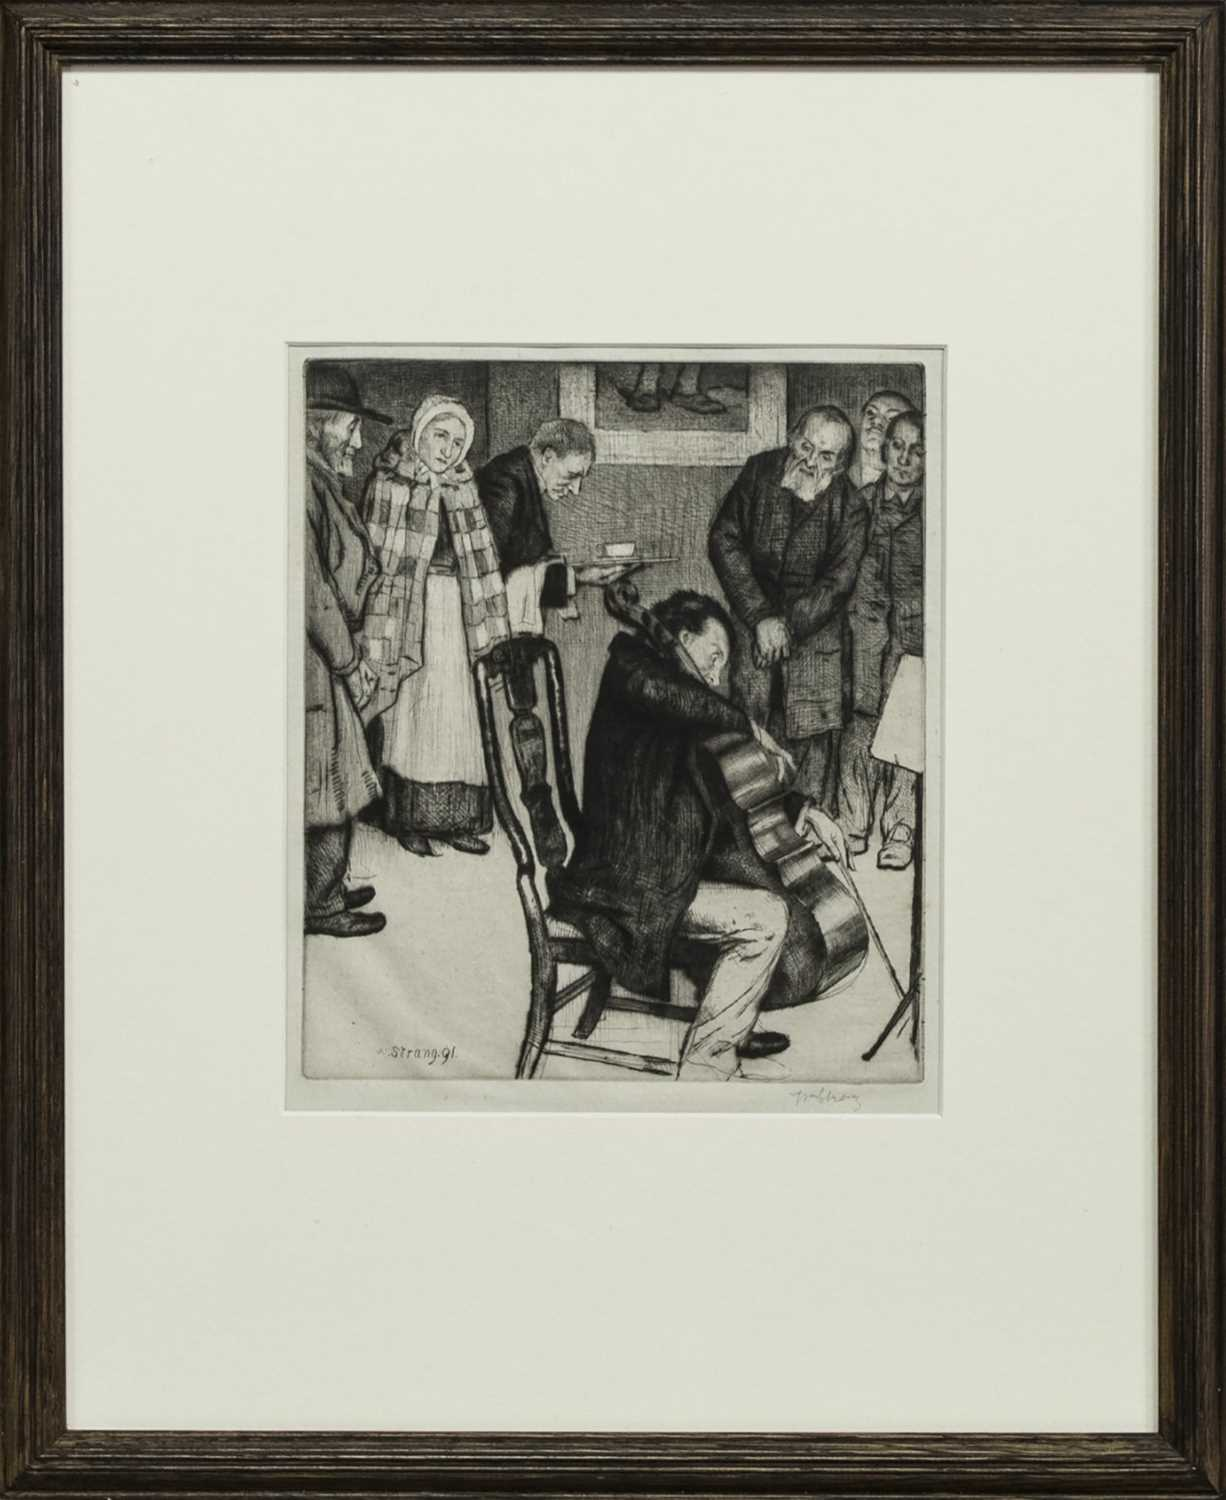 Lot 69 - THE VIOLINCELLIST, AN ETCHING BY WILLIAM STRANG